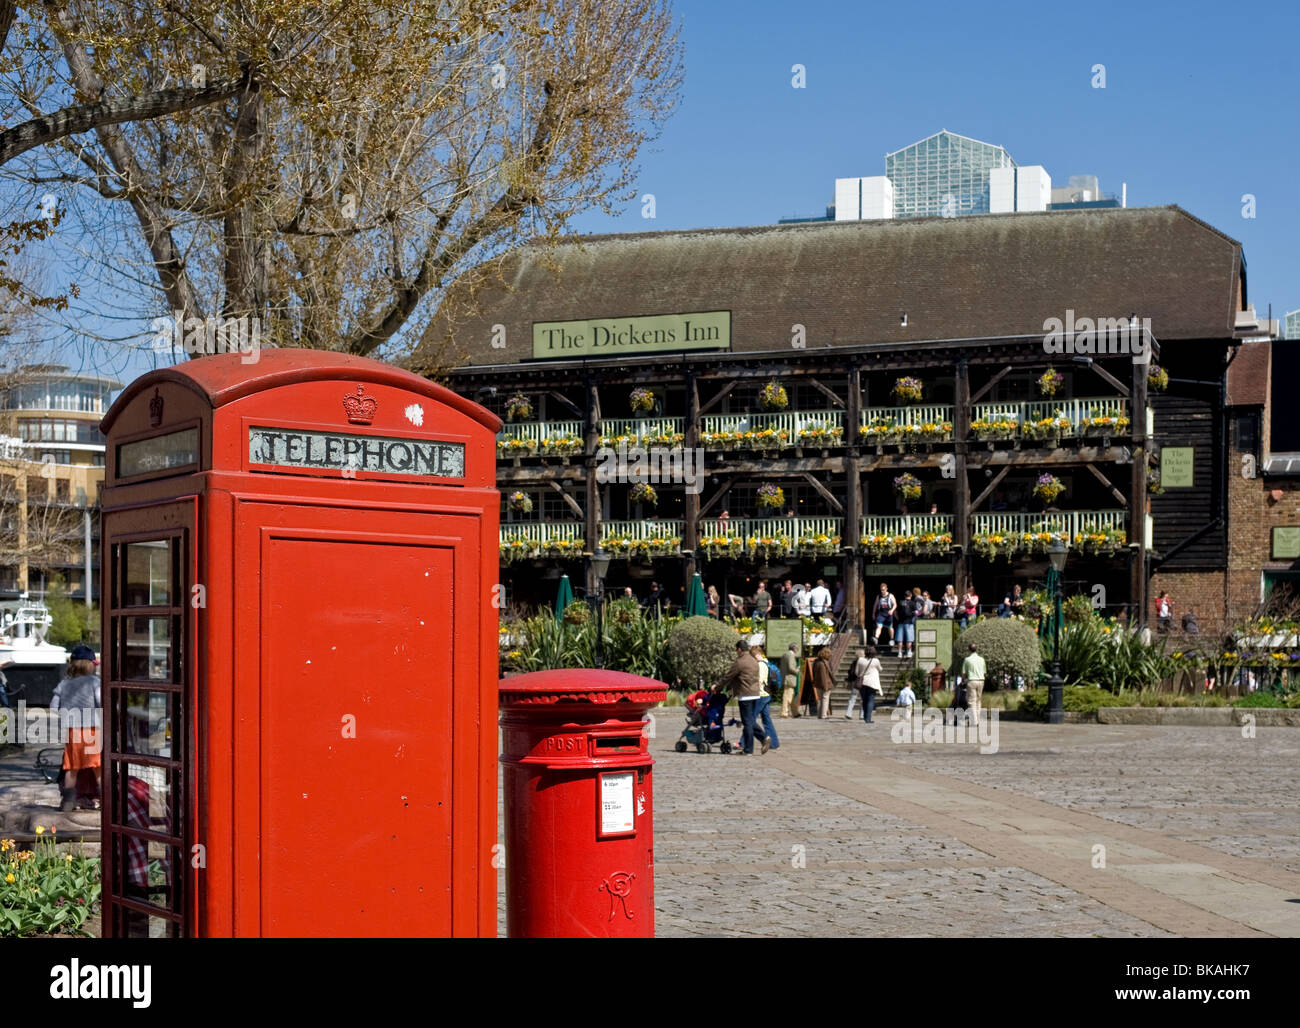 A traditional red telephone box and a cast iron red letter box near the Dickens Inn pub in London.  .  Photo by - Stock Image